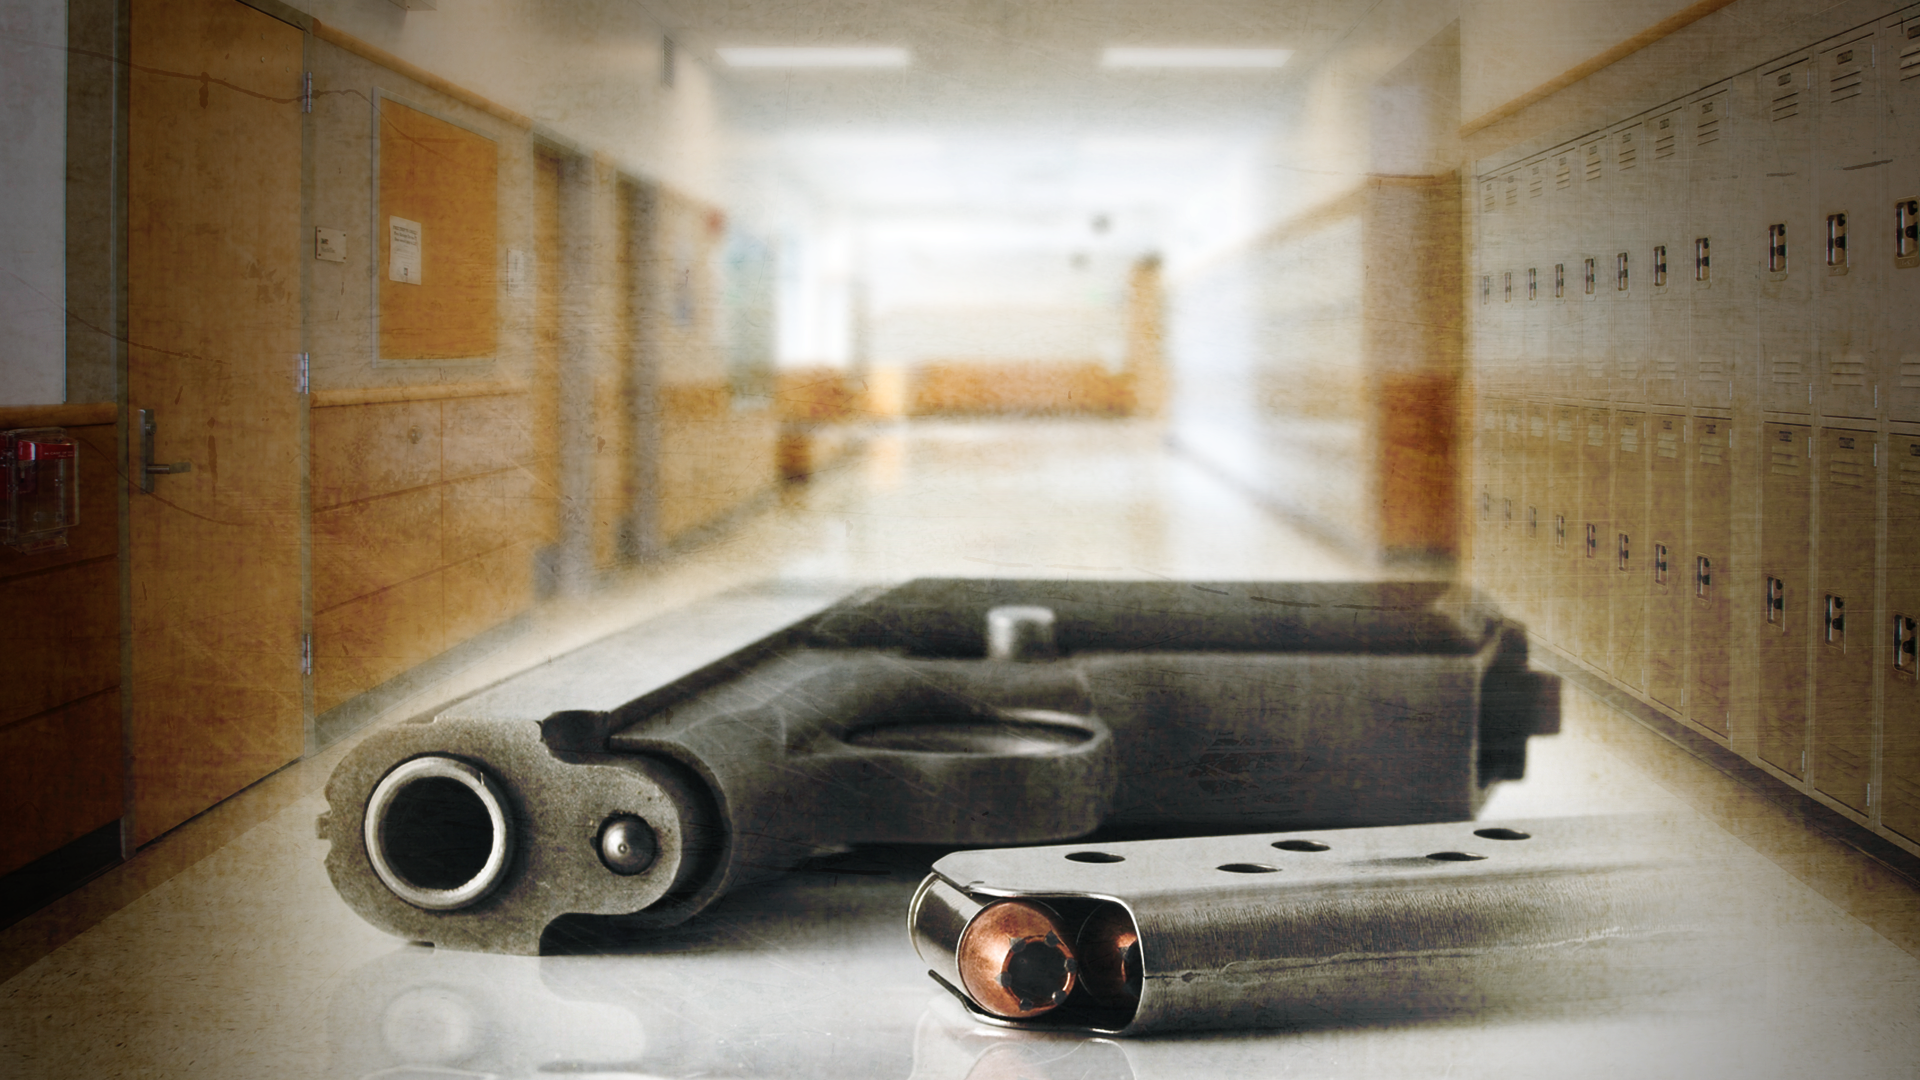 Gun School Gun in School Gun at School_1541025694771.png.jpg